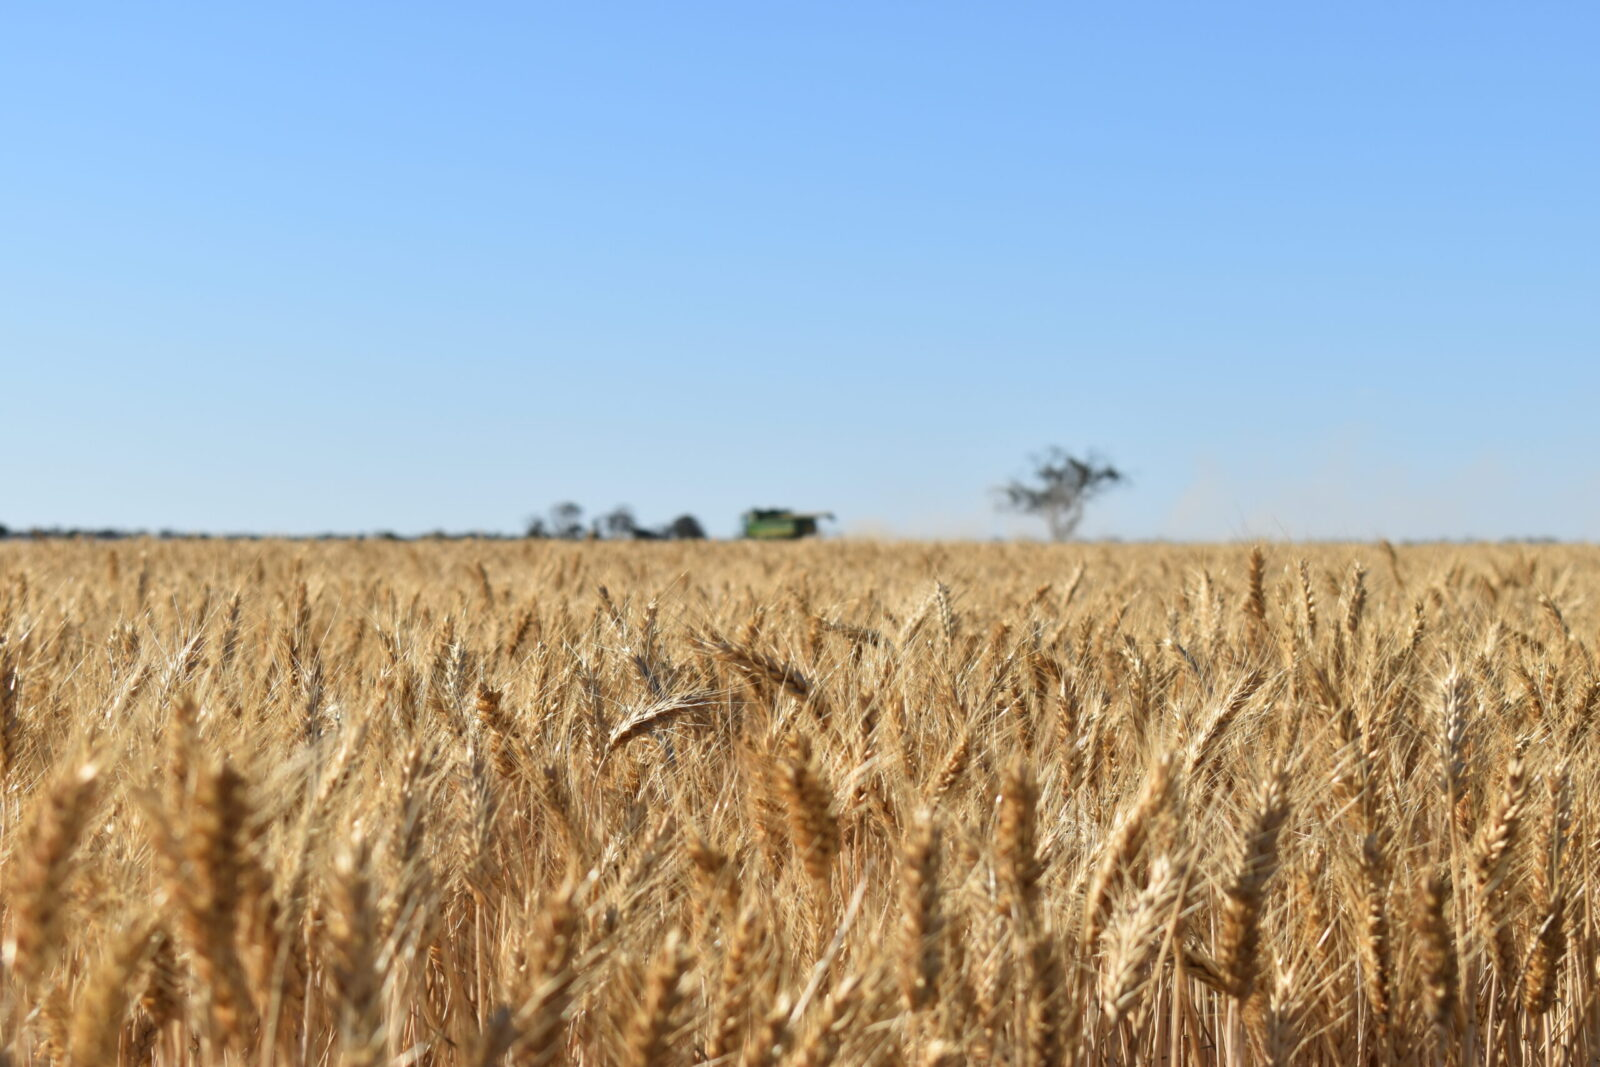 Farmers need support, not dress-ups, to reap benefits of climate action